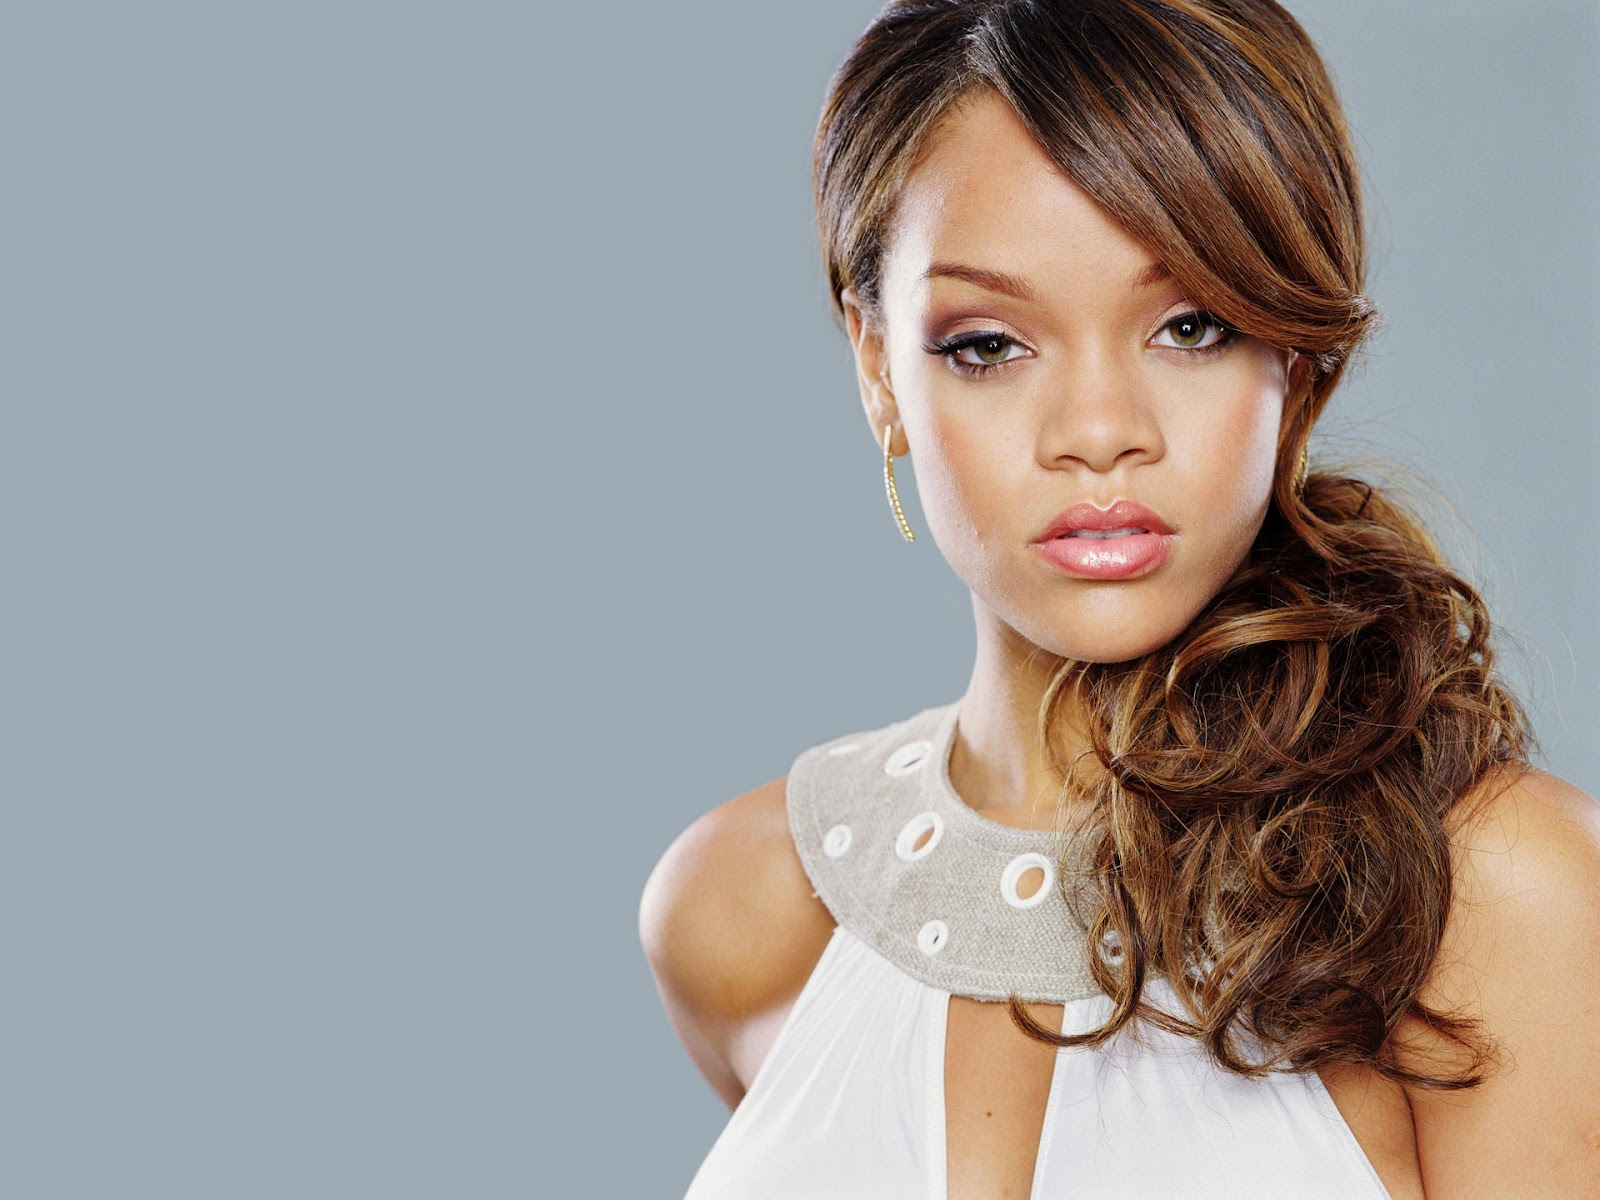 Rihanna Photos & Pictures: Rihanna Wallpapers #2